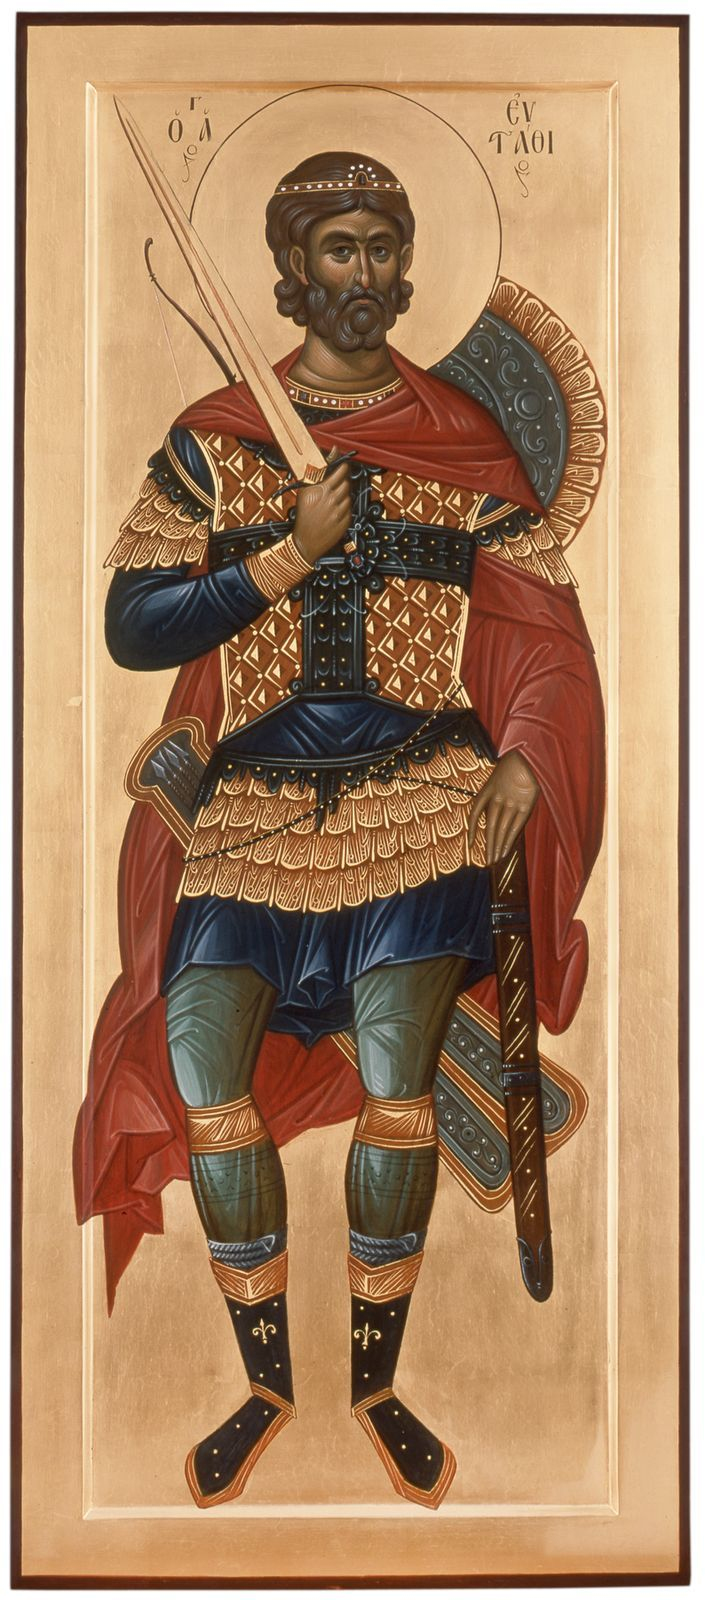 St. Eustathios the Great Martyr icon.  (http://www.ruicon.ru/exhibition/1x1.php?page_30=2&)